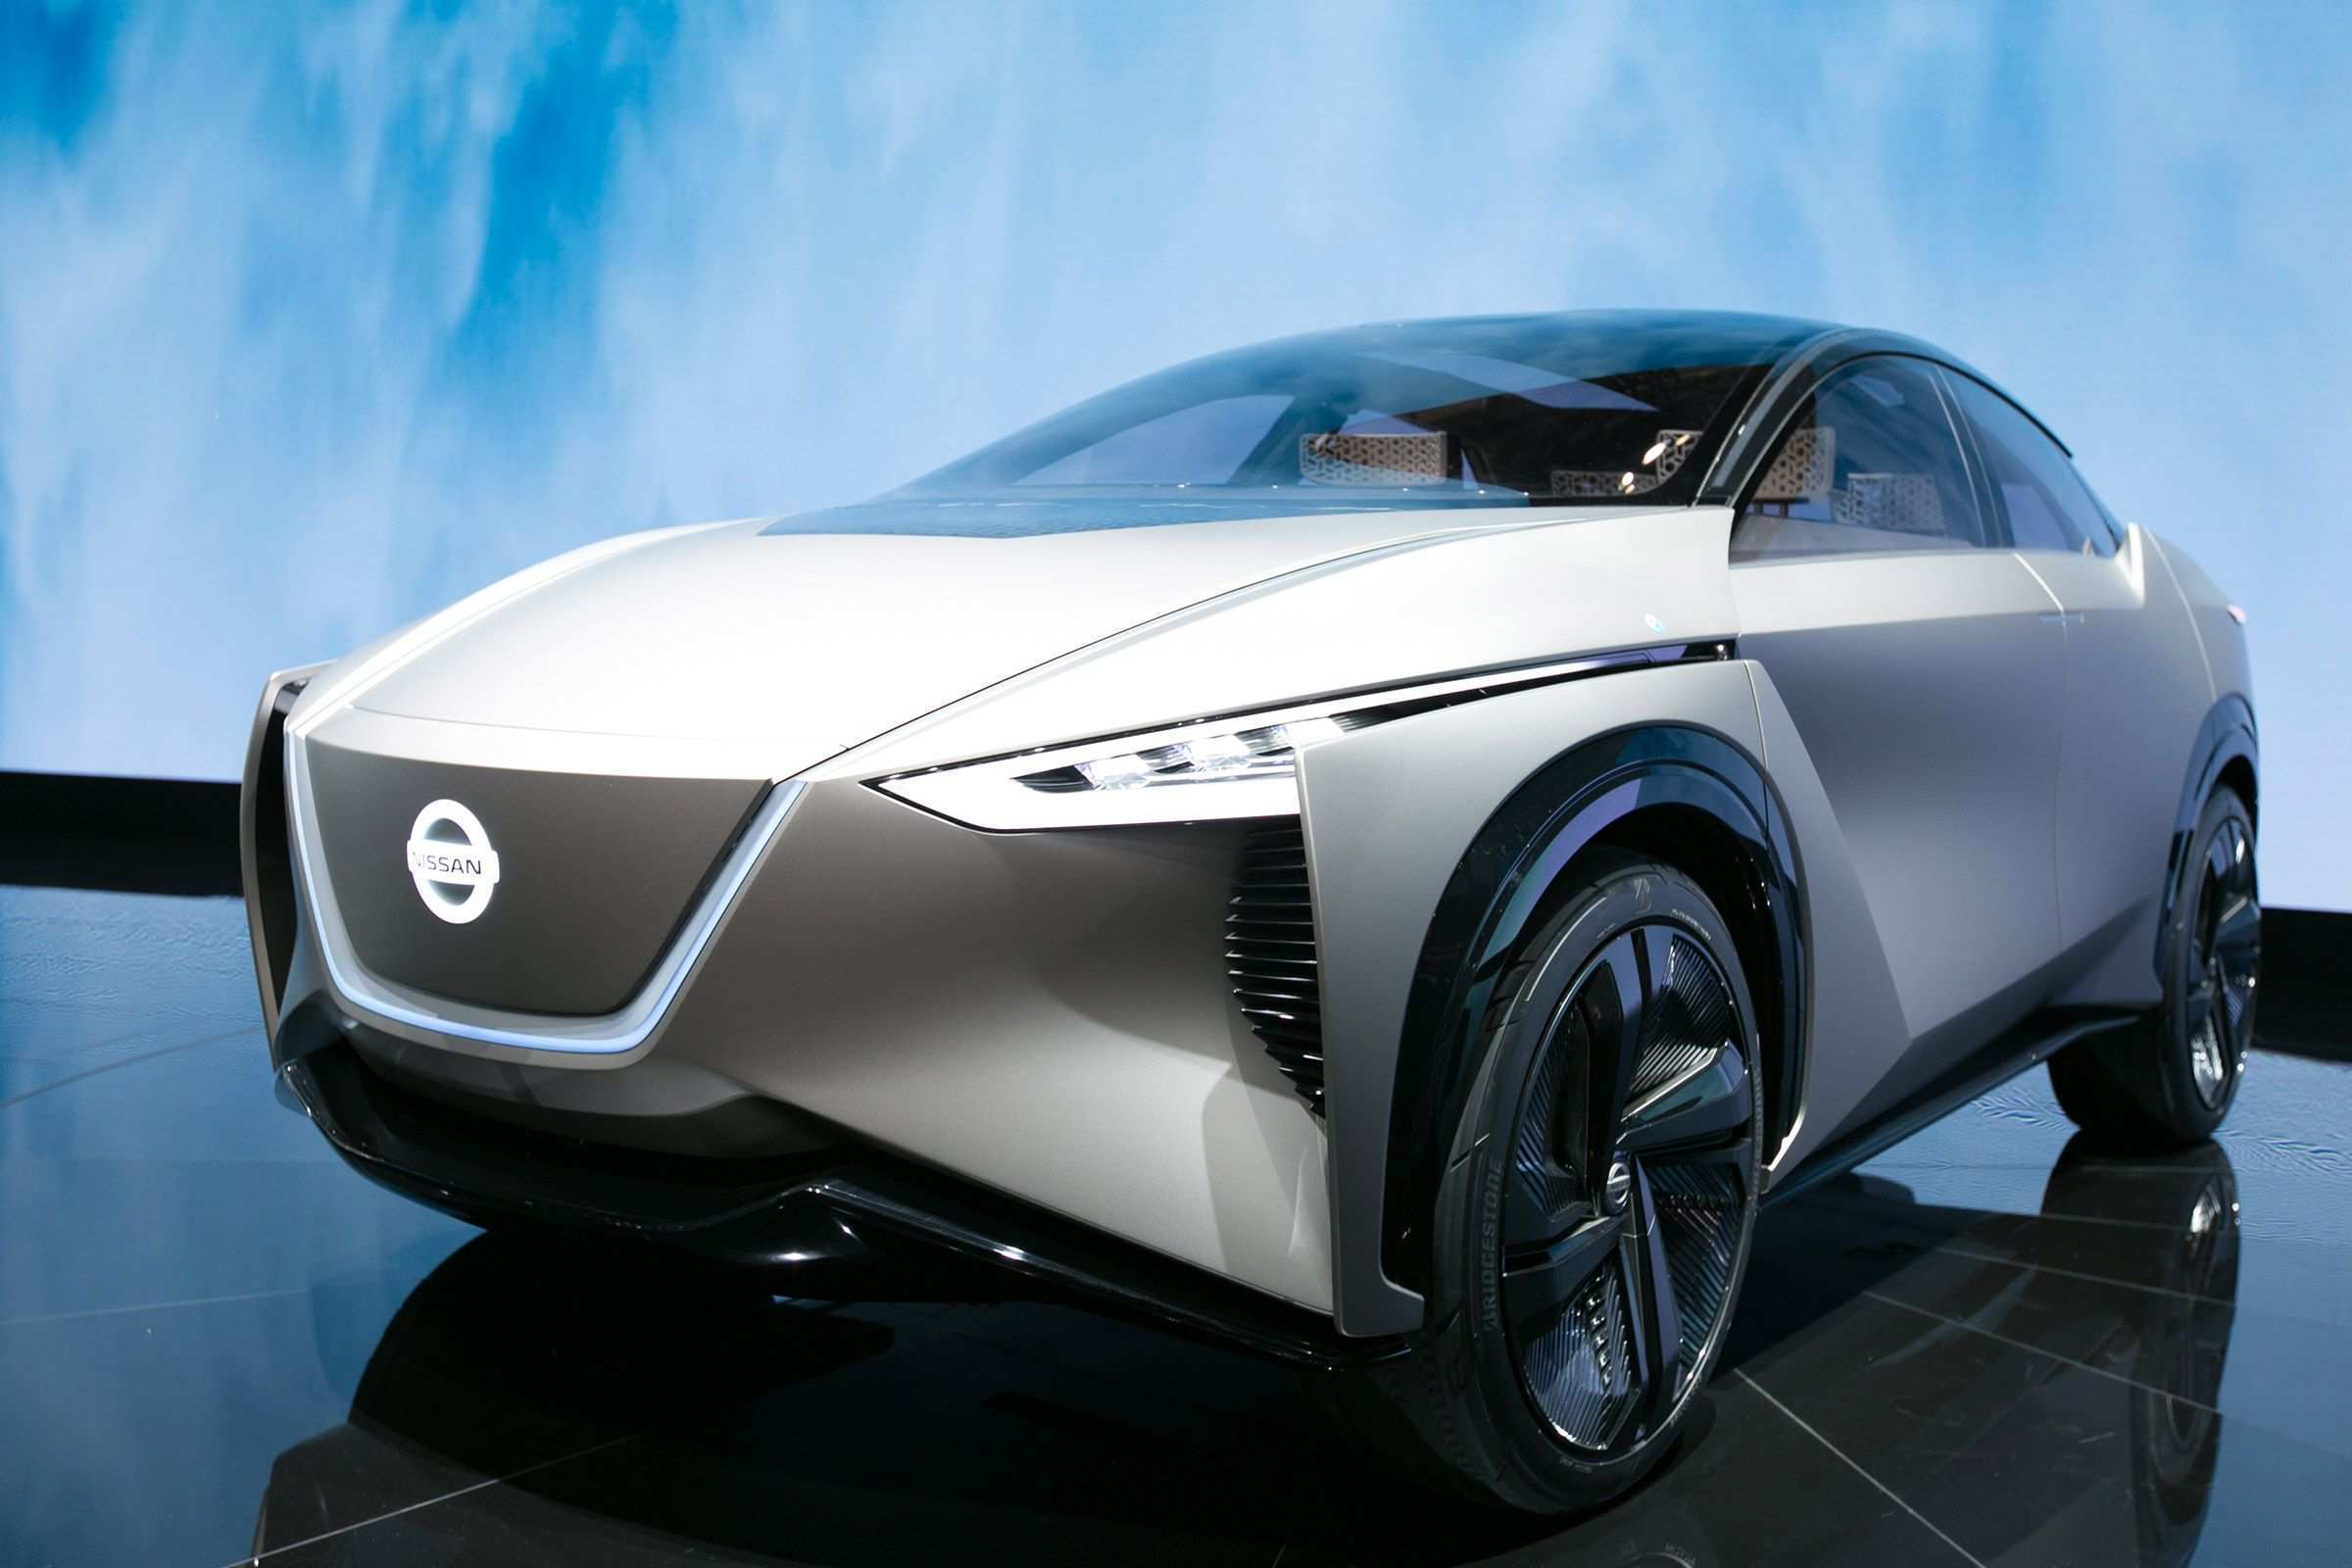 19 Gallery of Nissan 2020 Electric Car Interior with Nissan 2020 Electric Car